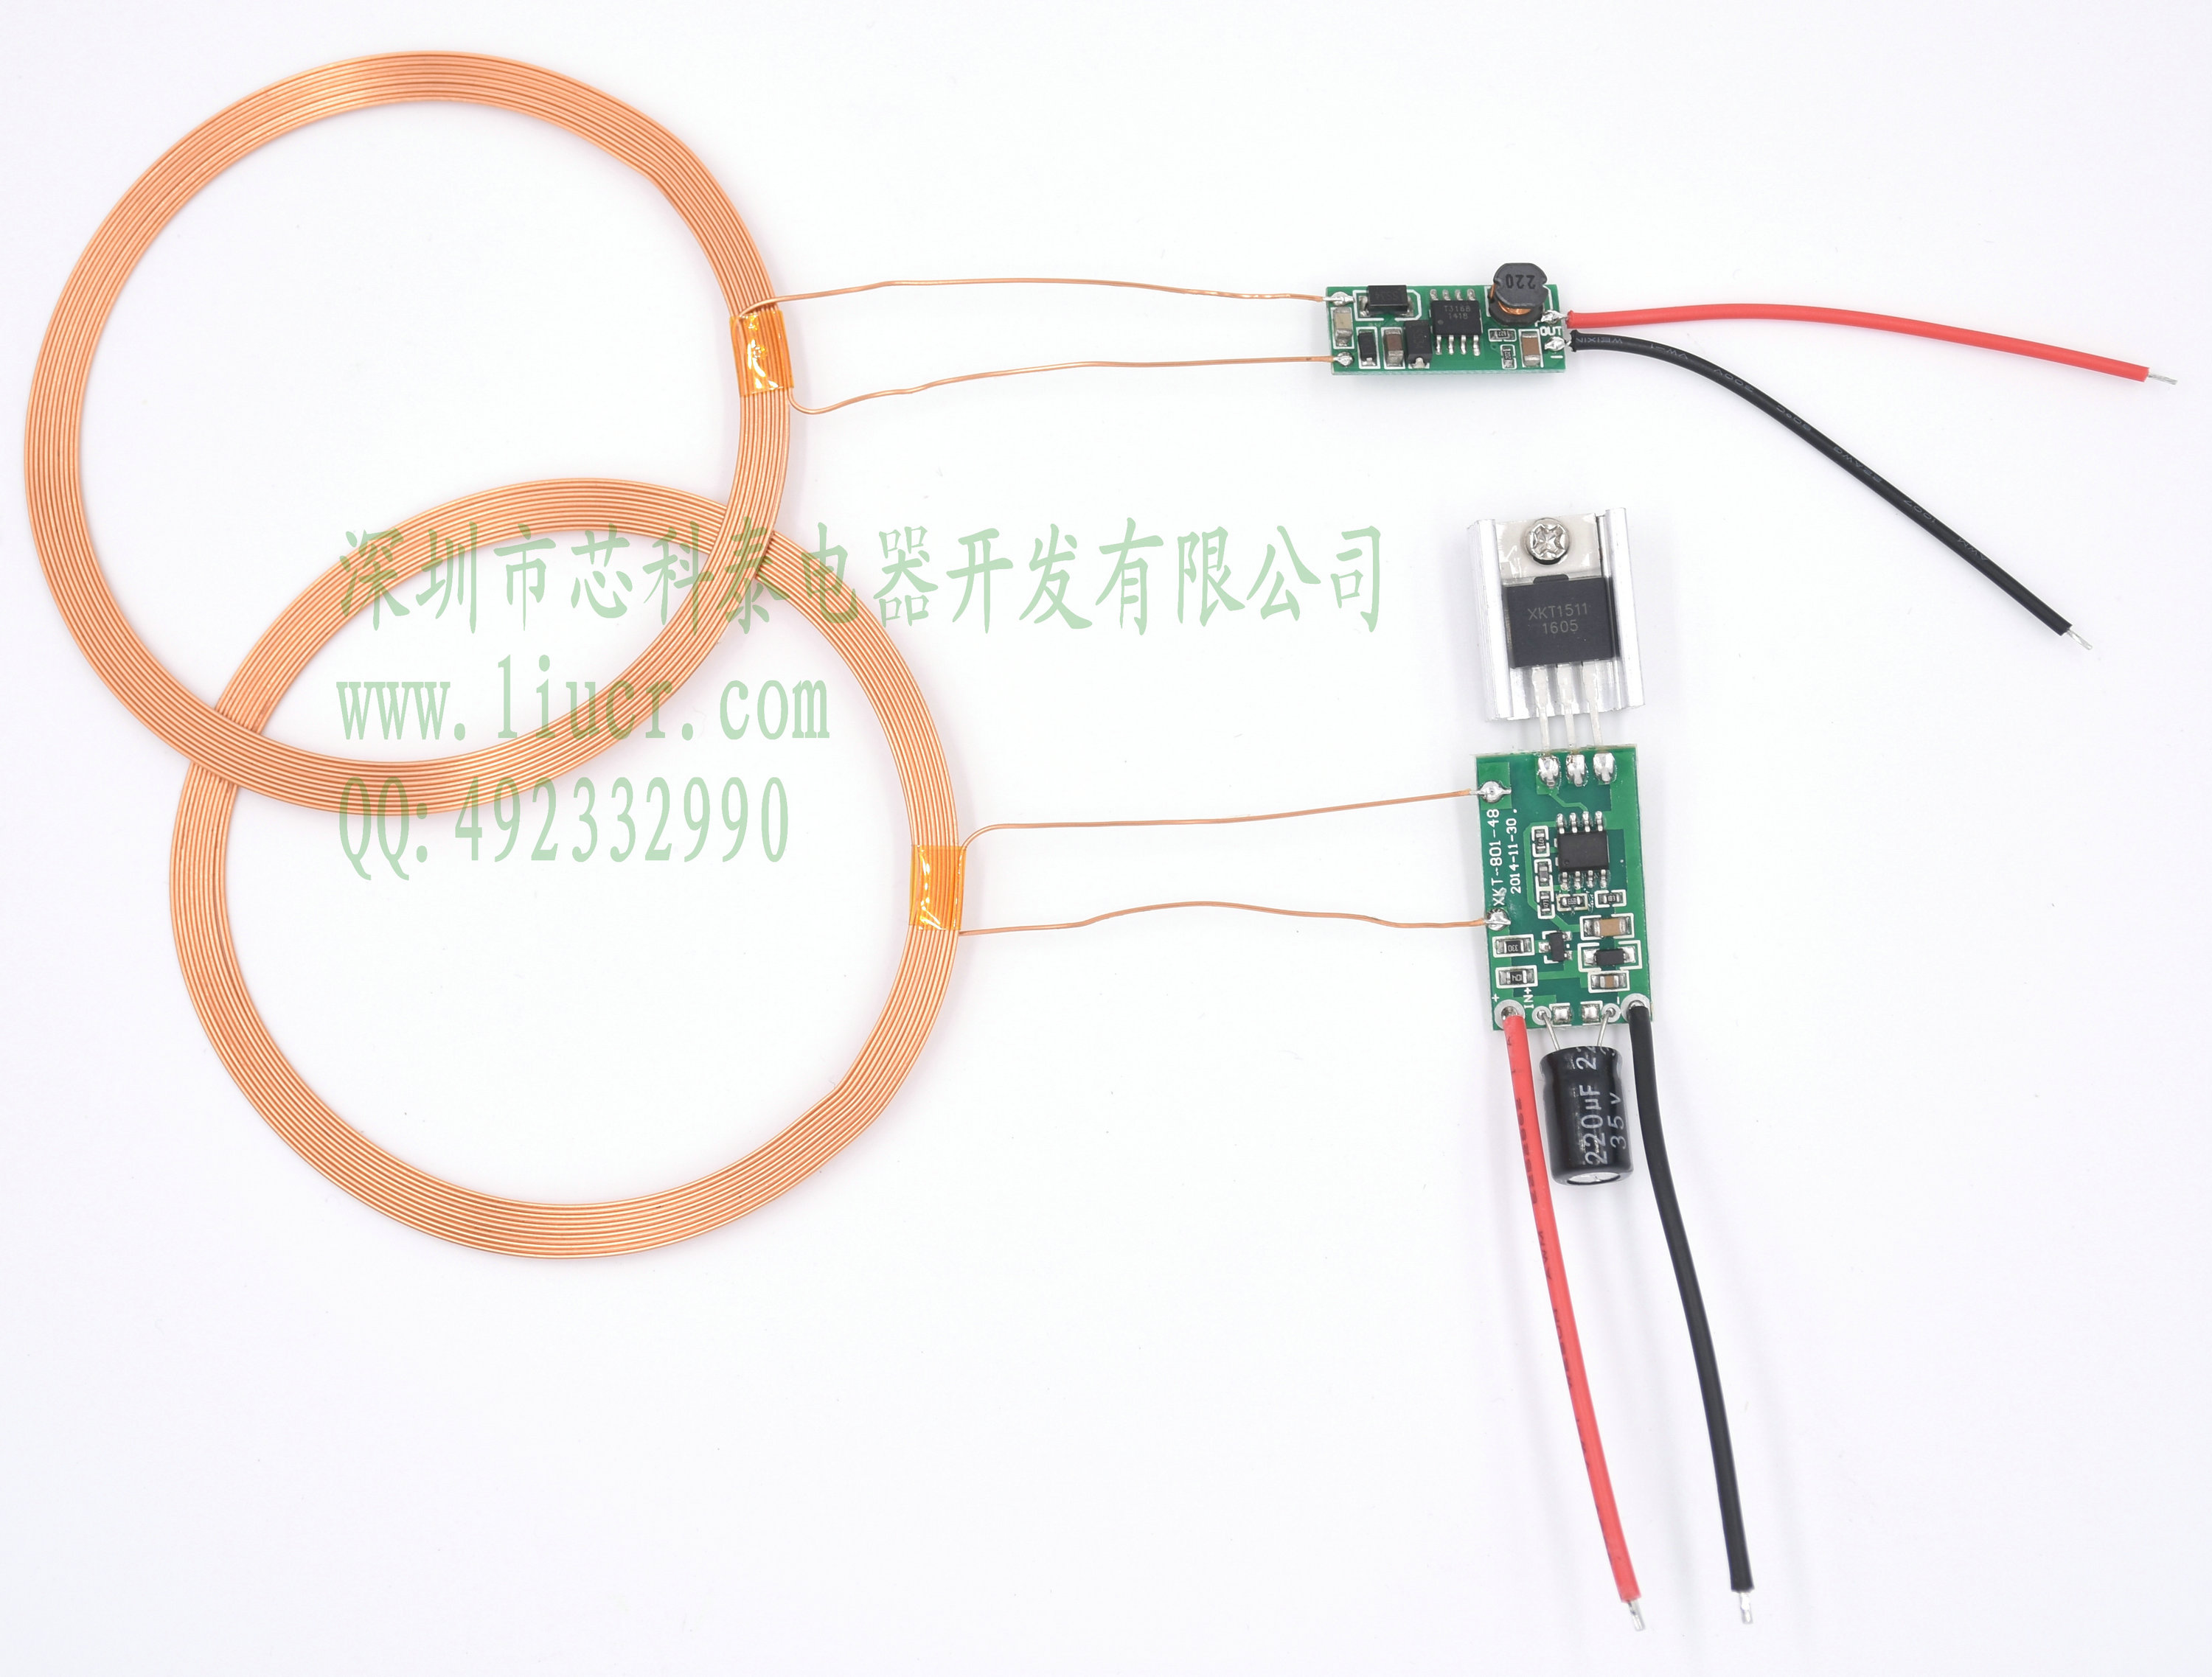 20mm distance output 5V1A long distance high current wireless power supply charging transmission module program long distance wireless transmission module of wireless 600mm dc power supply module of high power wireless charging module